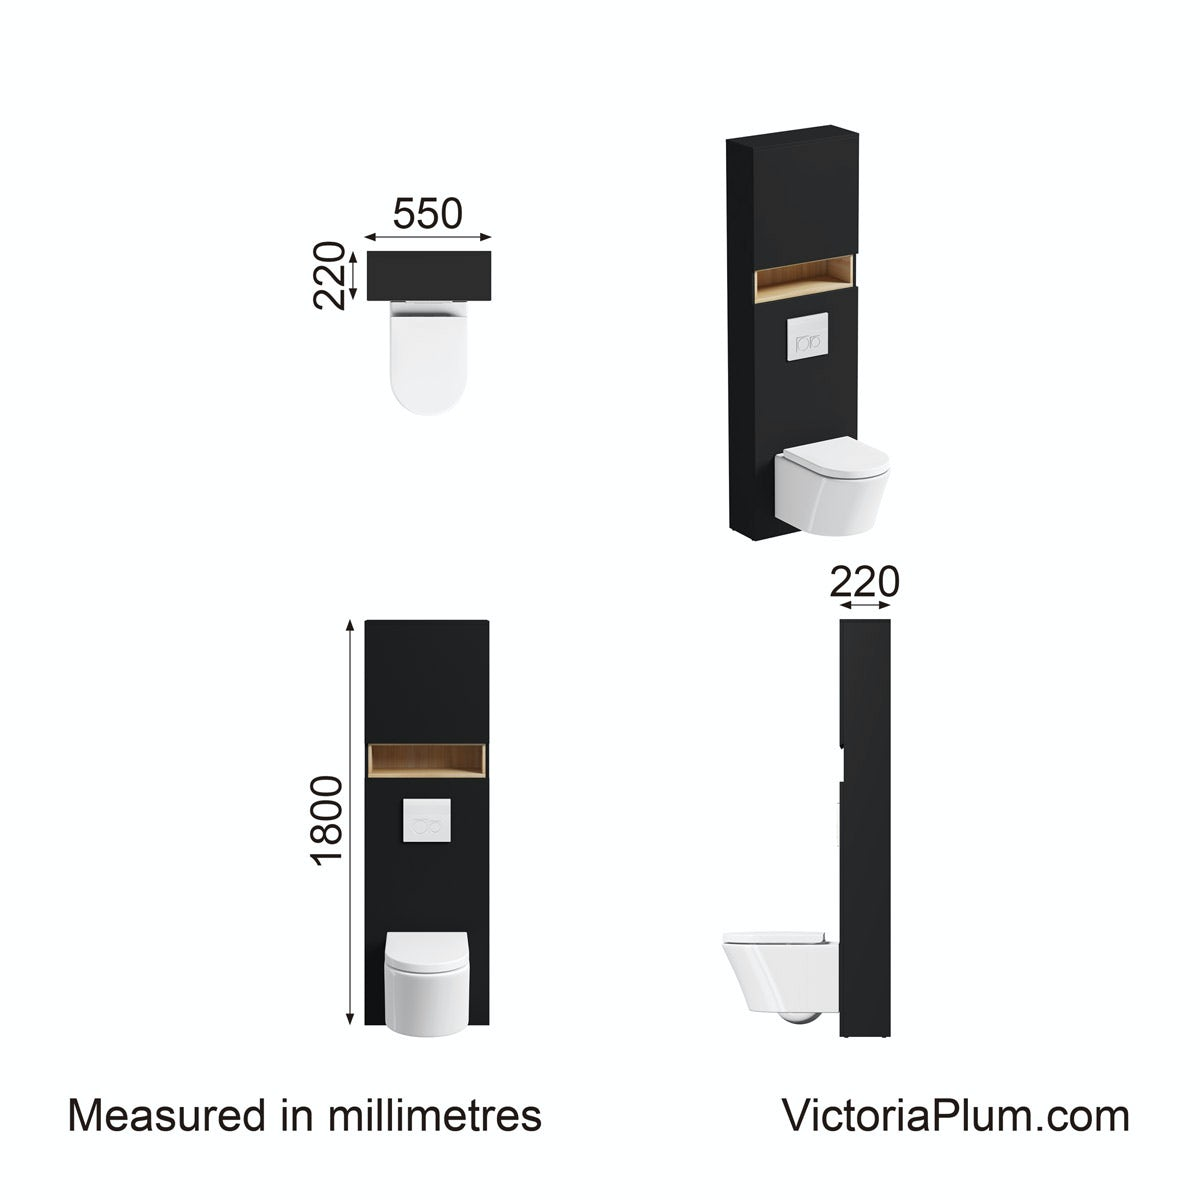 Dimensions for Mode Tate anthracite & oak tall toilet unit